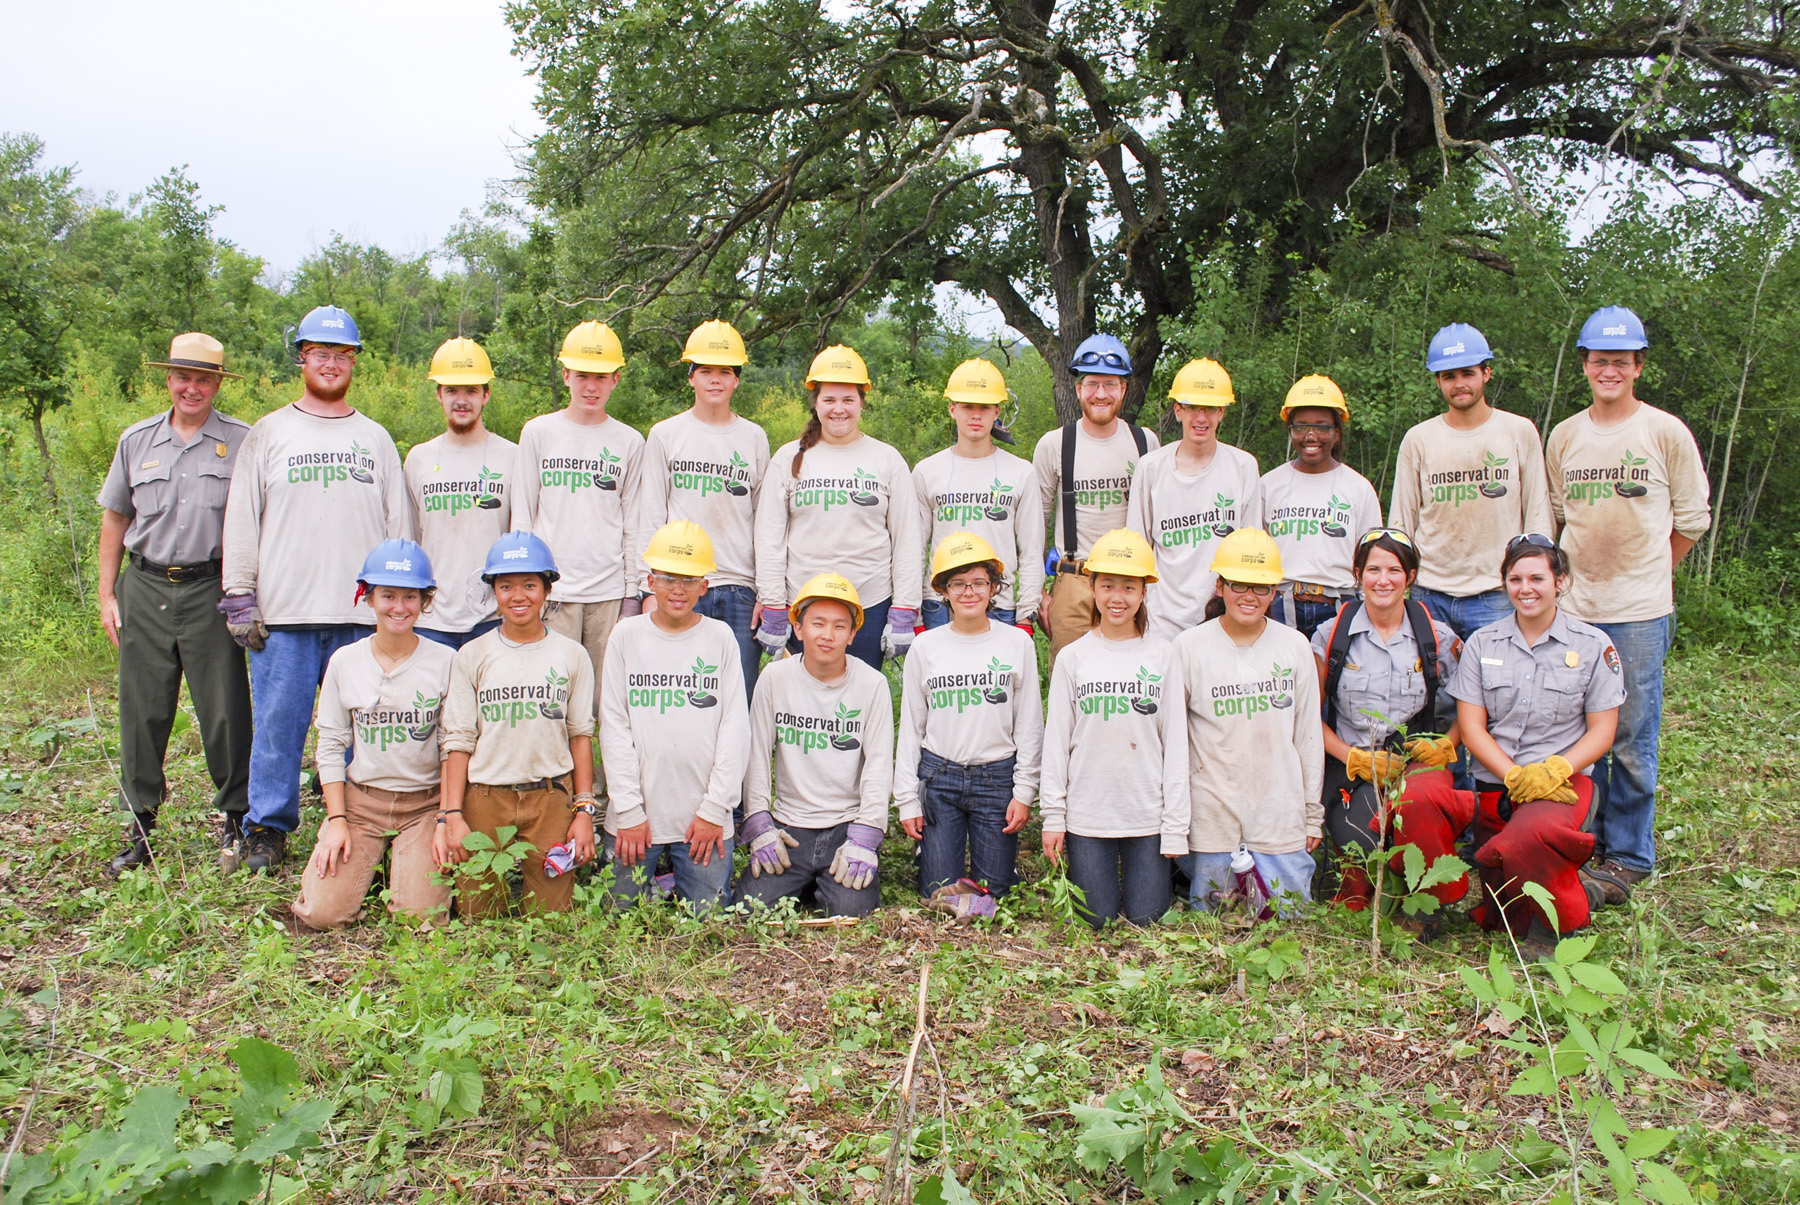 Youth conservation corps members 2015